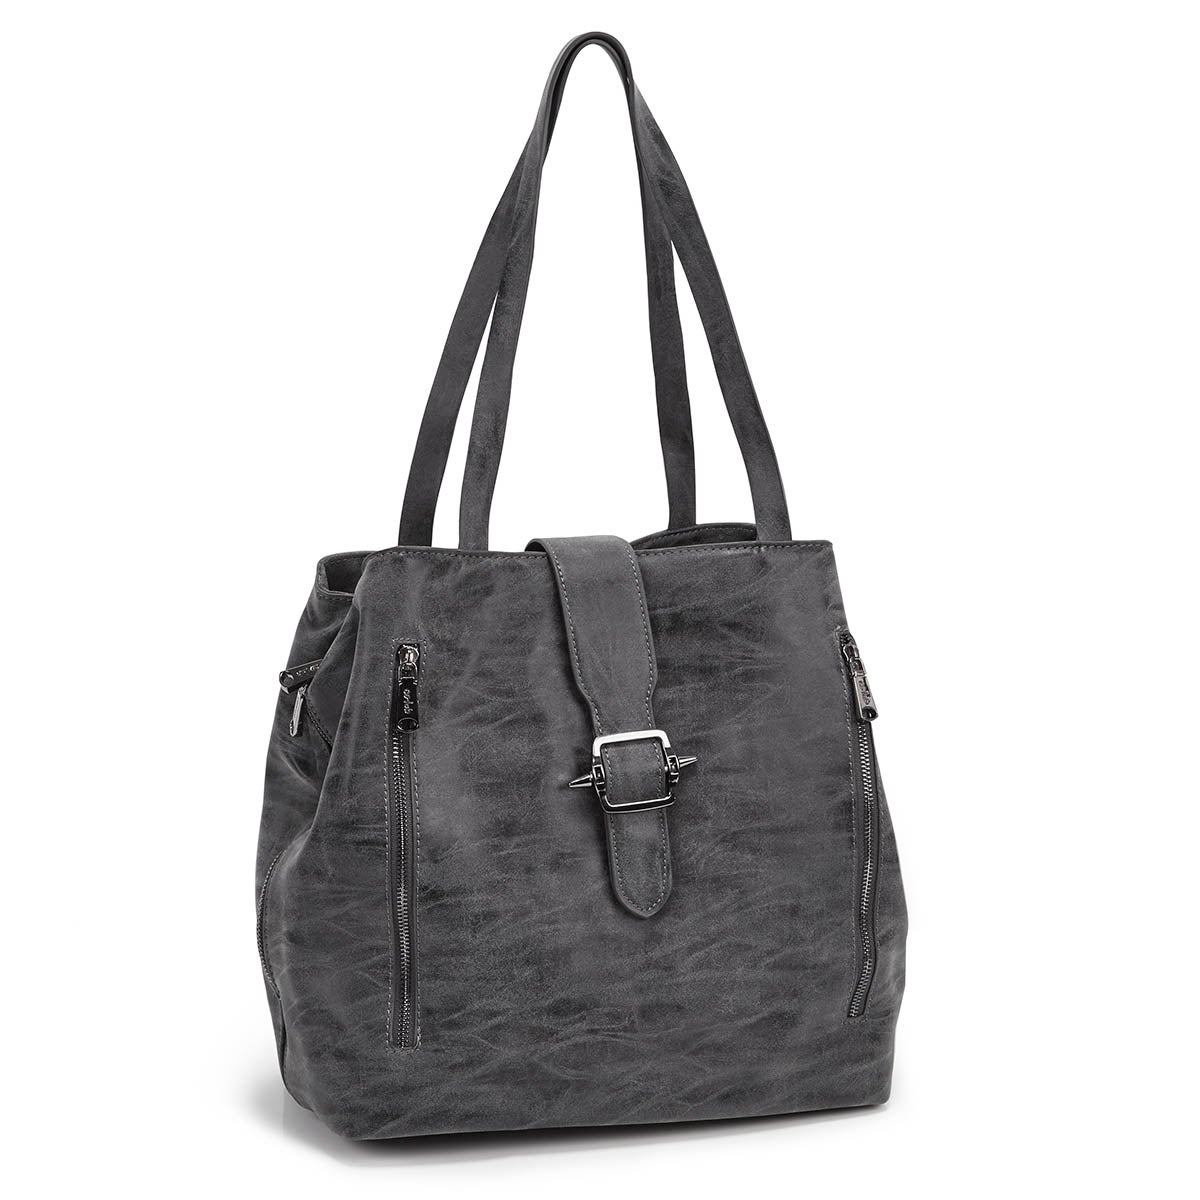 Lds dk grey buckle up tote bag